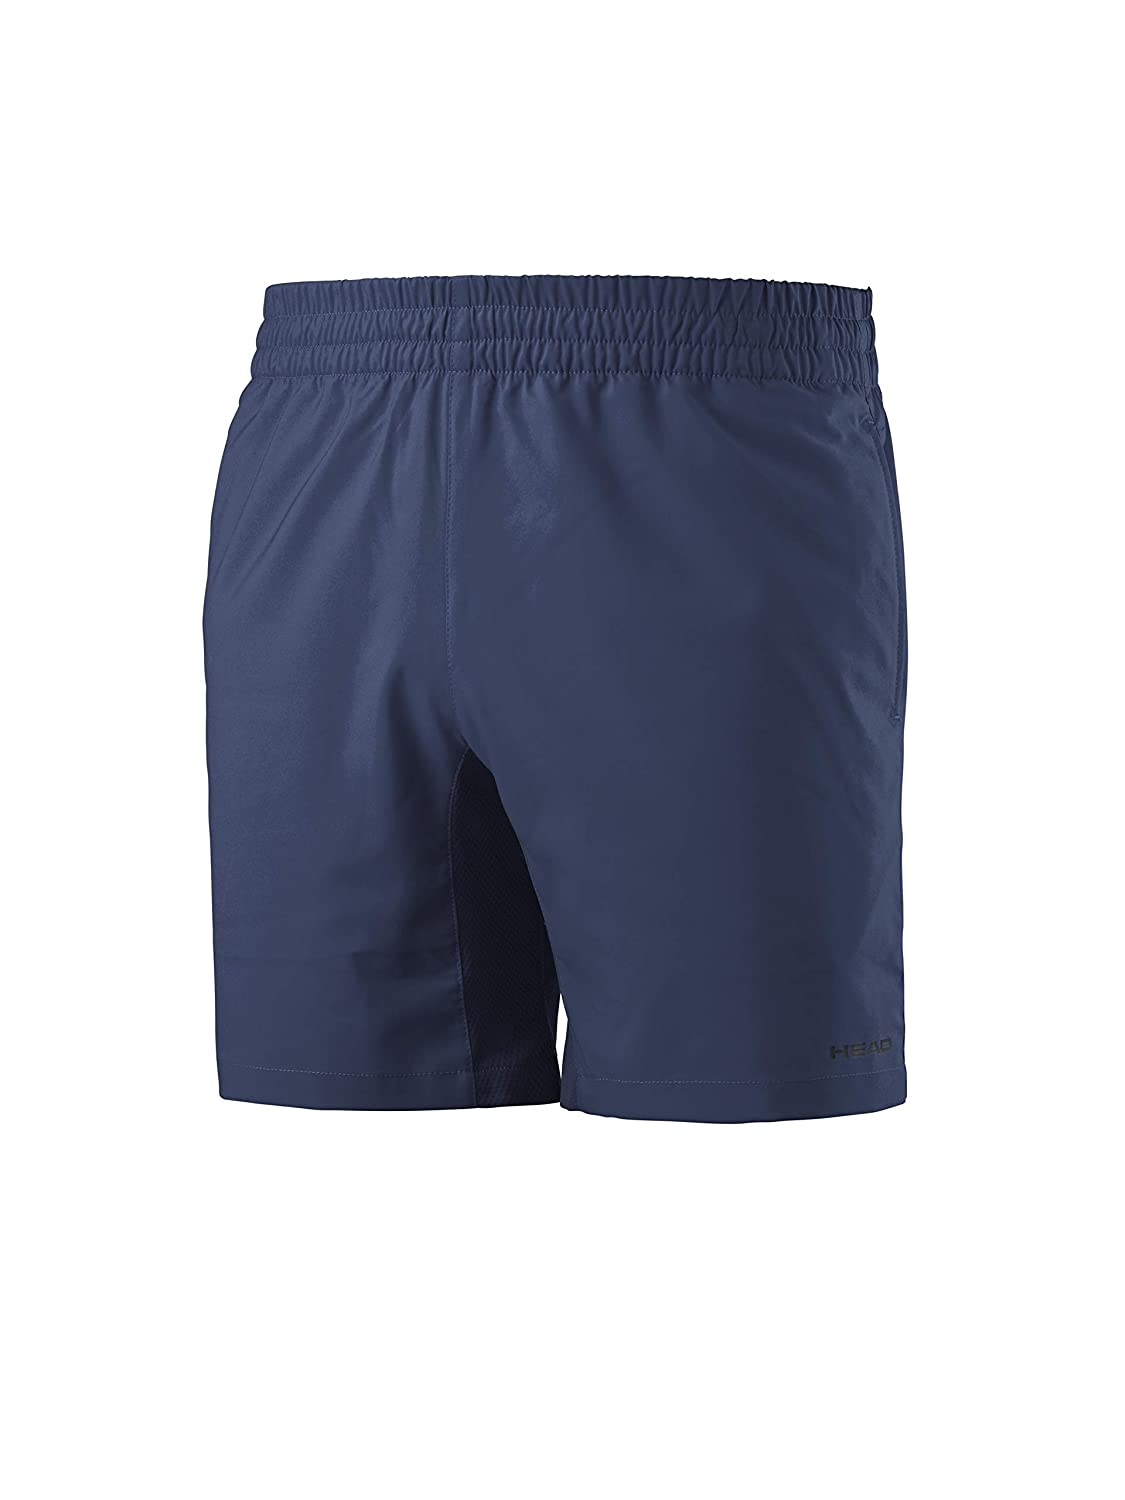 PANTALON CORTO HEAD CLUB GRIS: Amazon.es: Deportes y aire libre